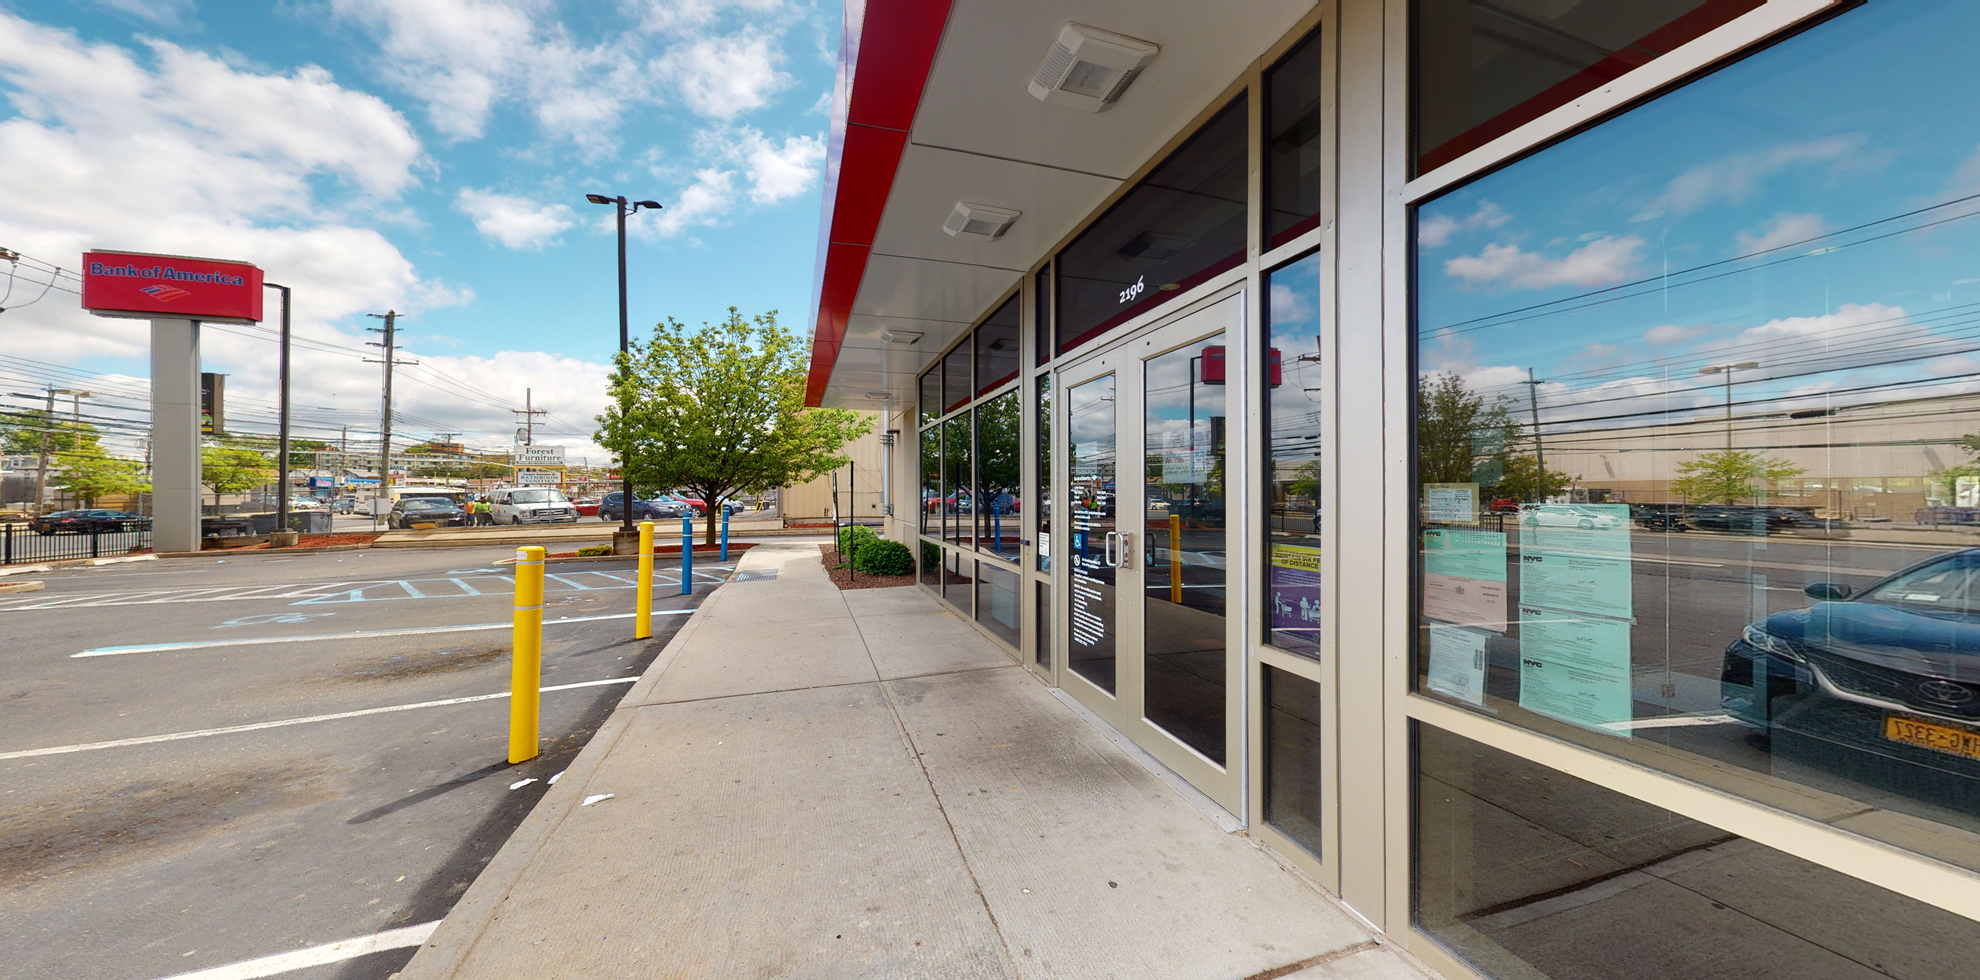 Bank of America financial center with drive-thru ATM and teller   2196 Forest Ave, Staten Island, NY 10303